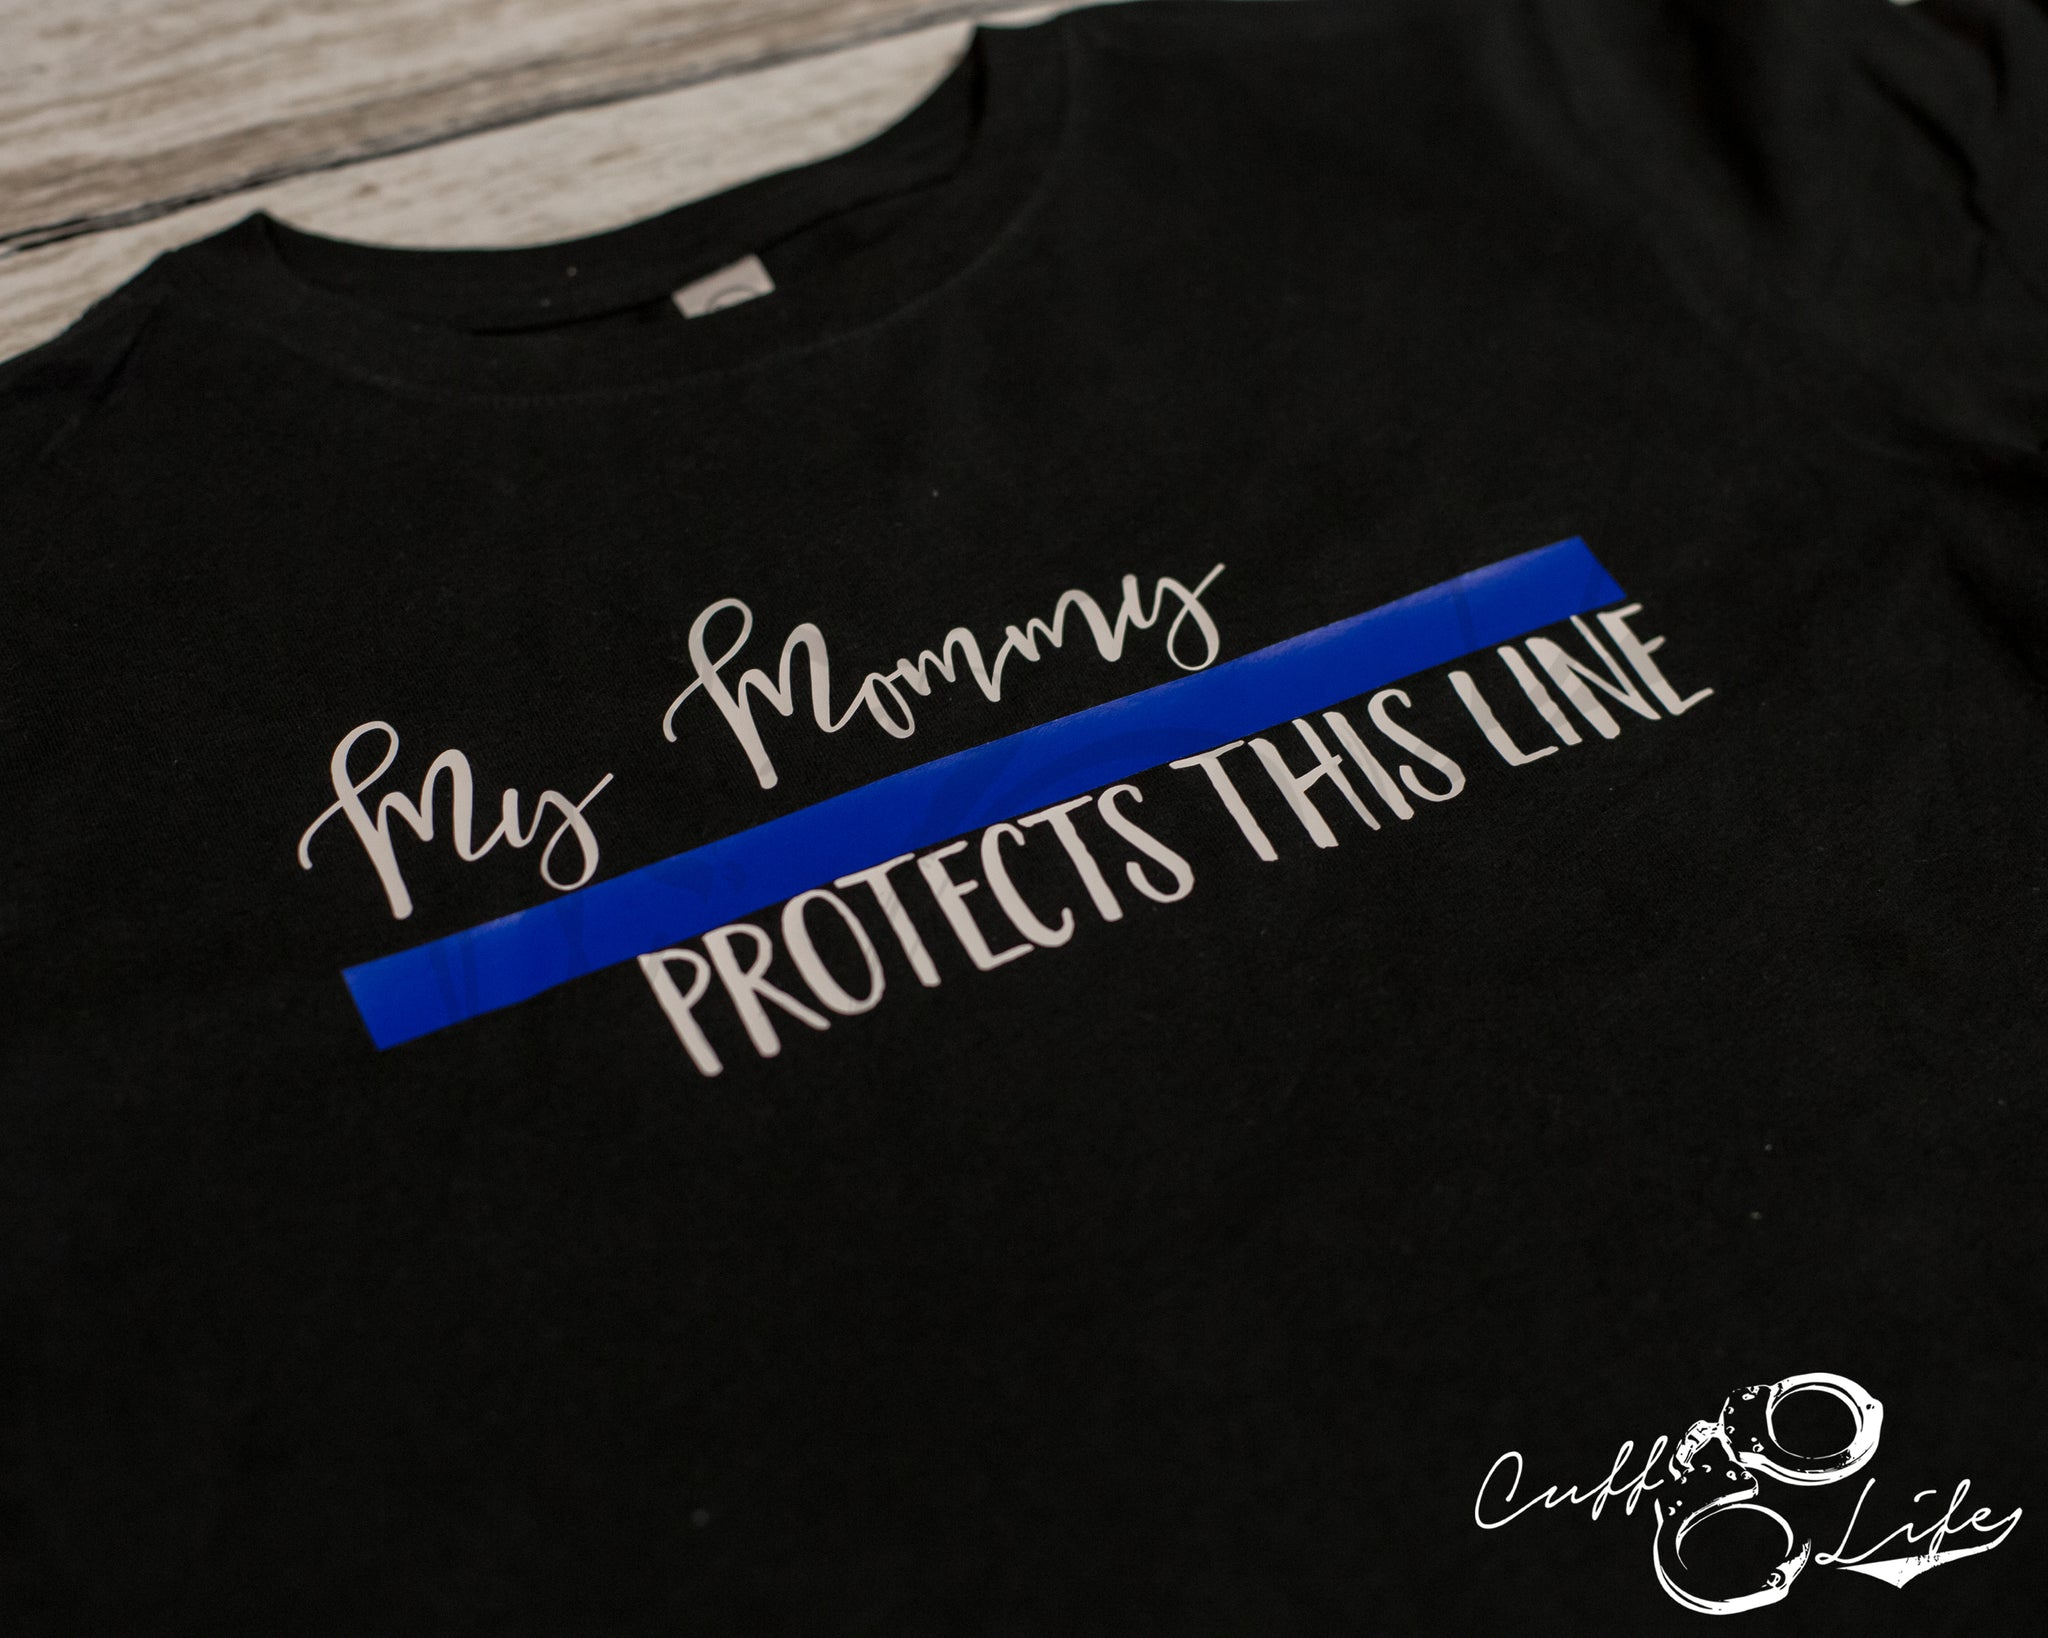 My Mommy Protects This Line - Toddler/Youth T-Shirt